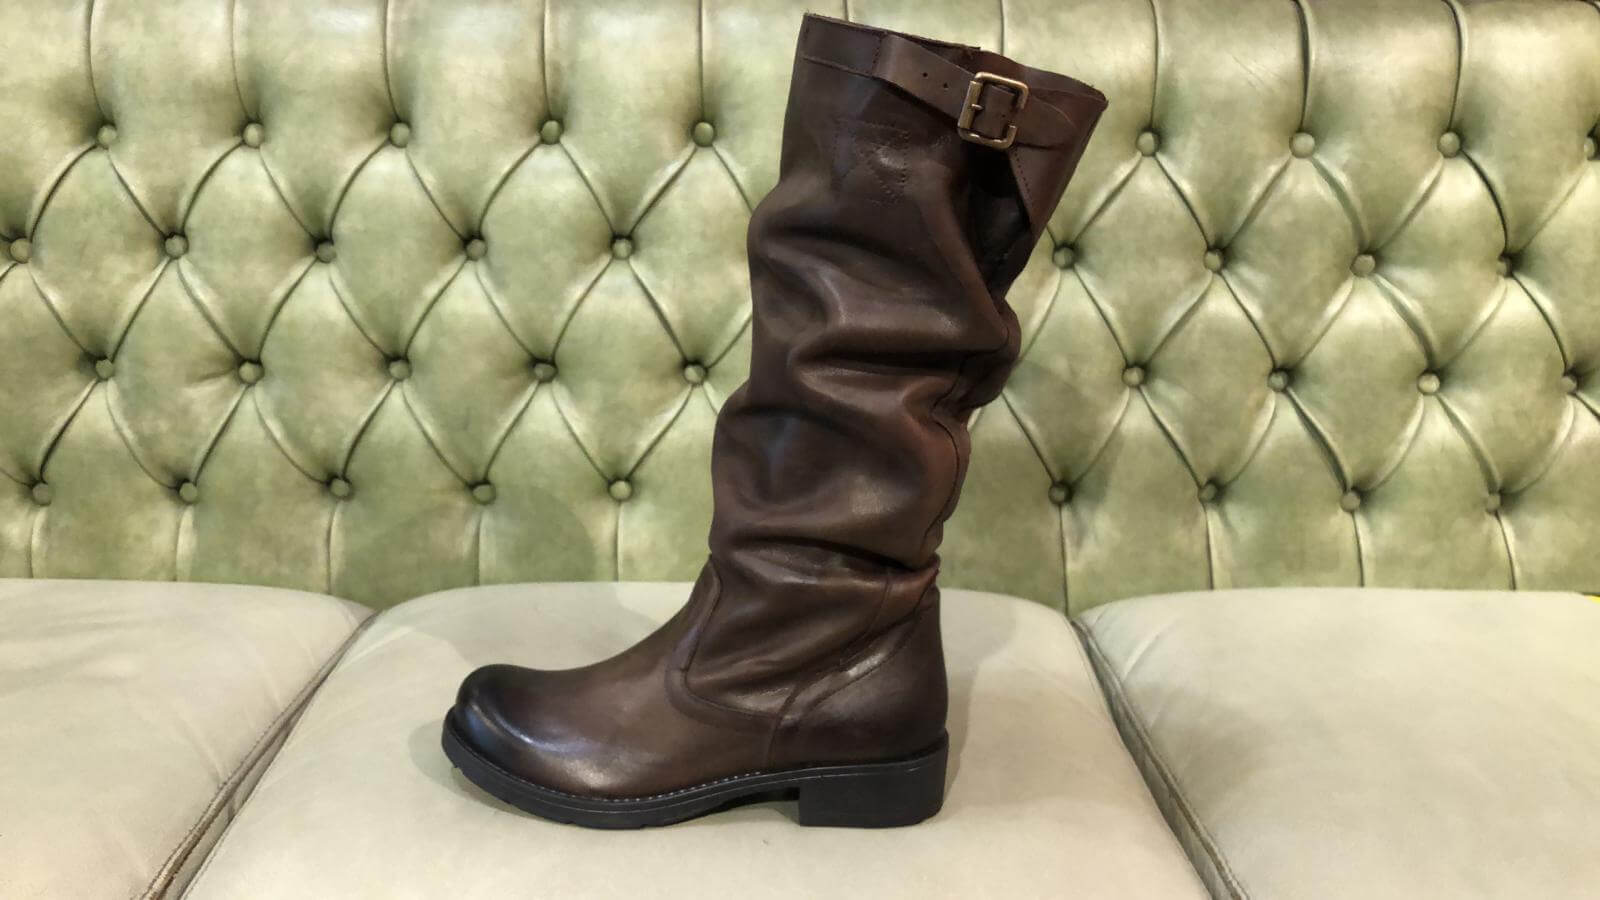 Browm slouch boots below the knee